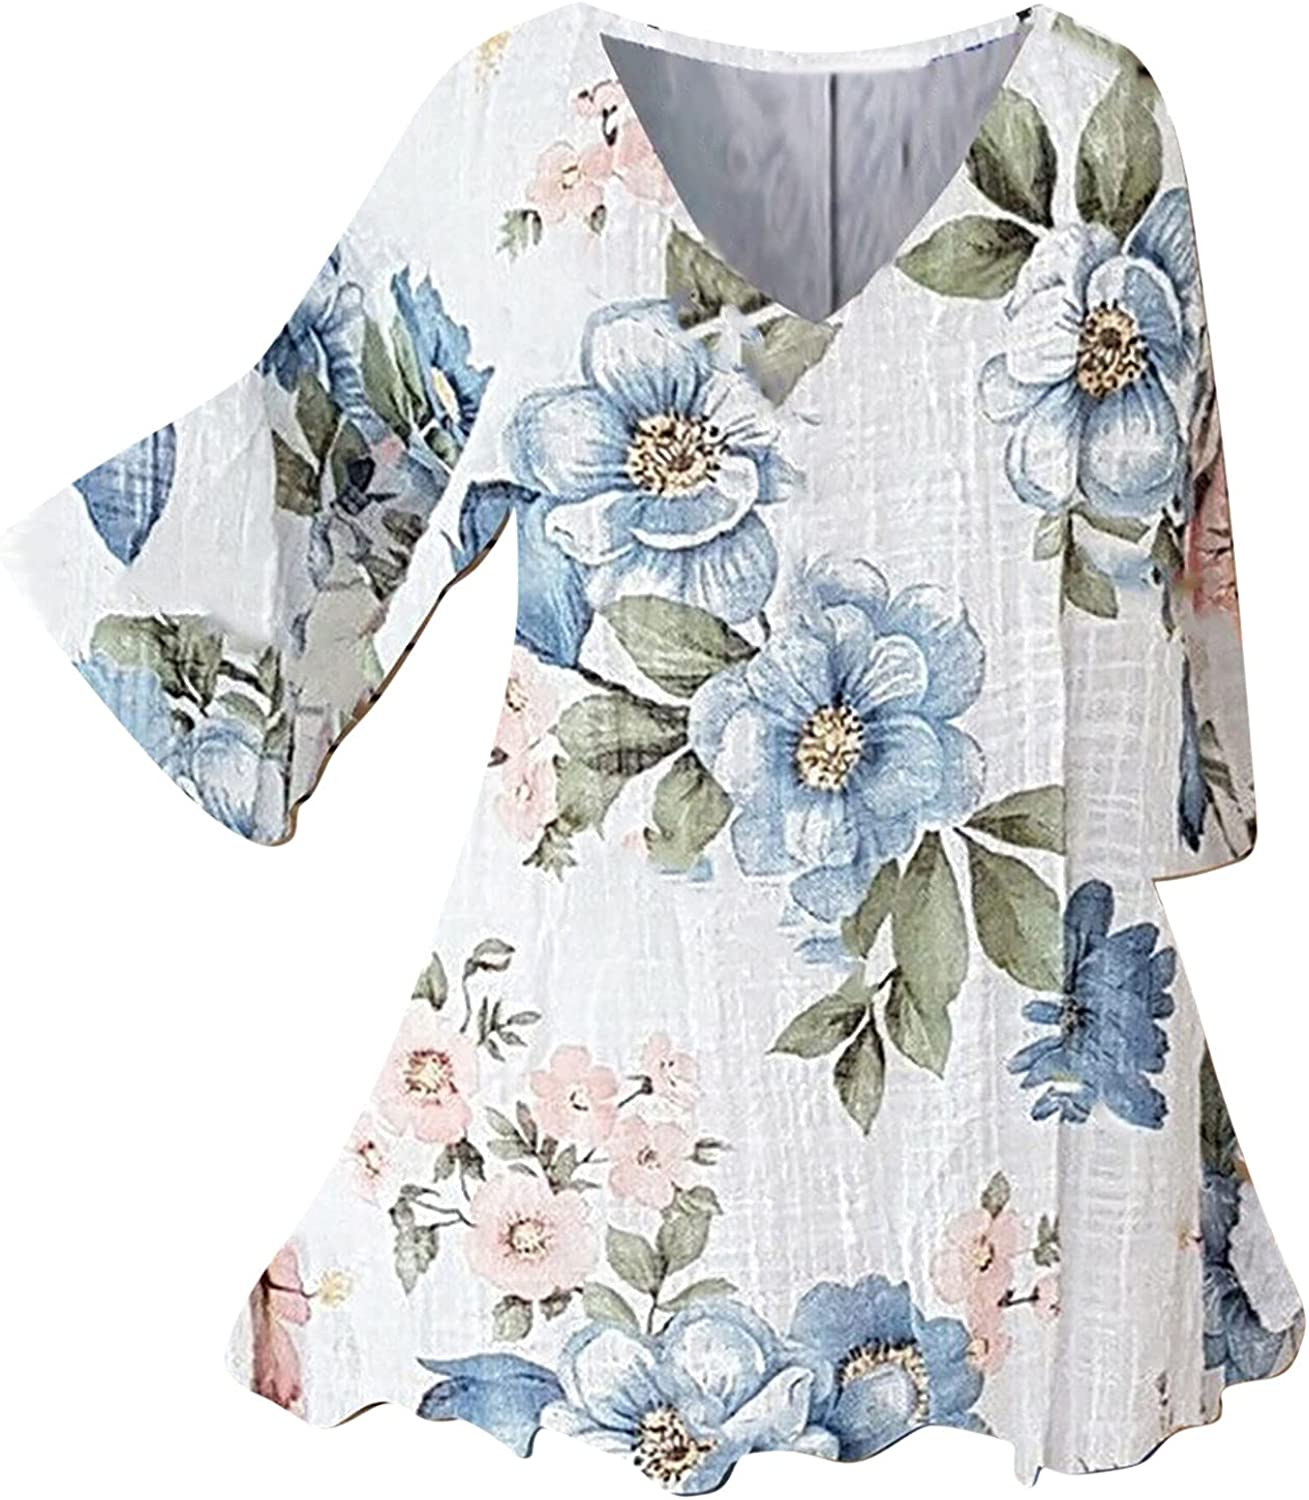 Kanzd Linen Tops for Women Casual Loose Fashion Button Down Long Sleeve Cute Floral Linen Shirts Tee Top Blouse Tunic